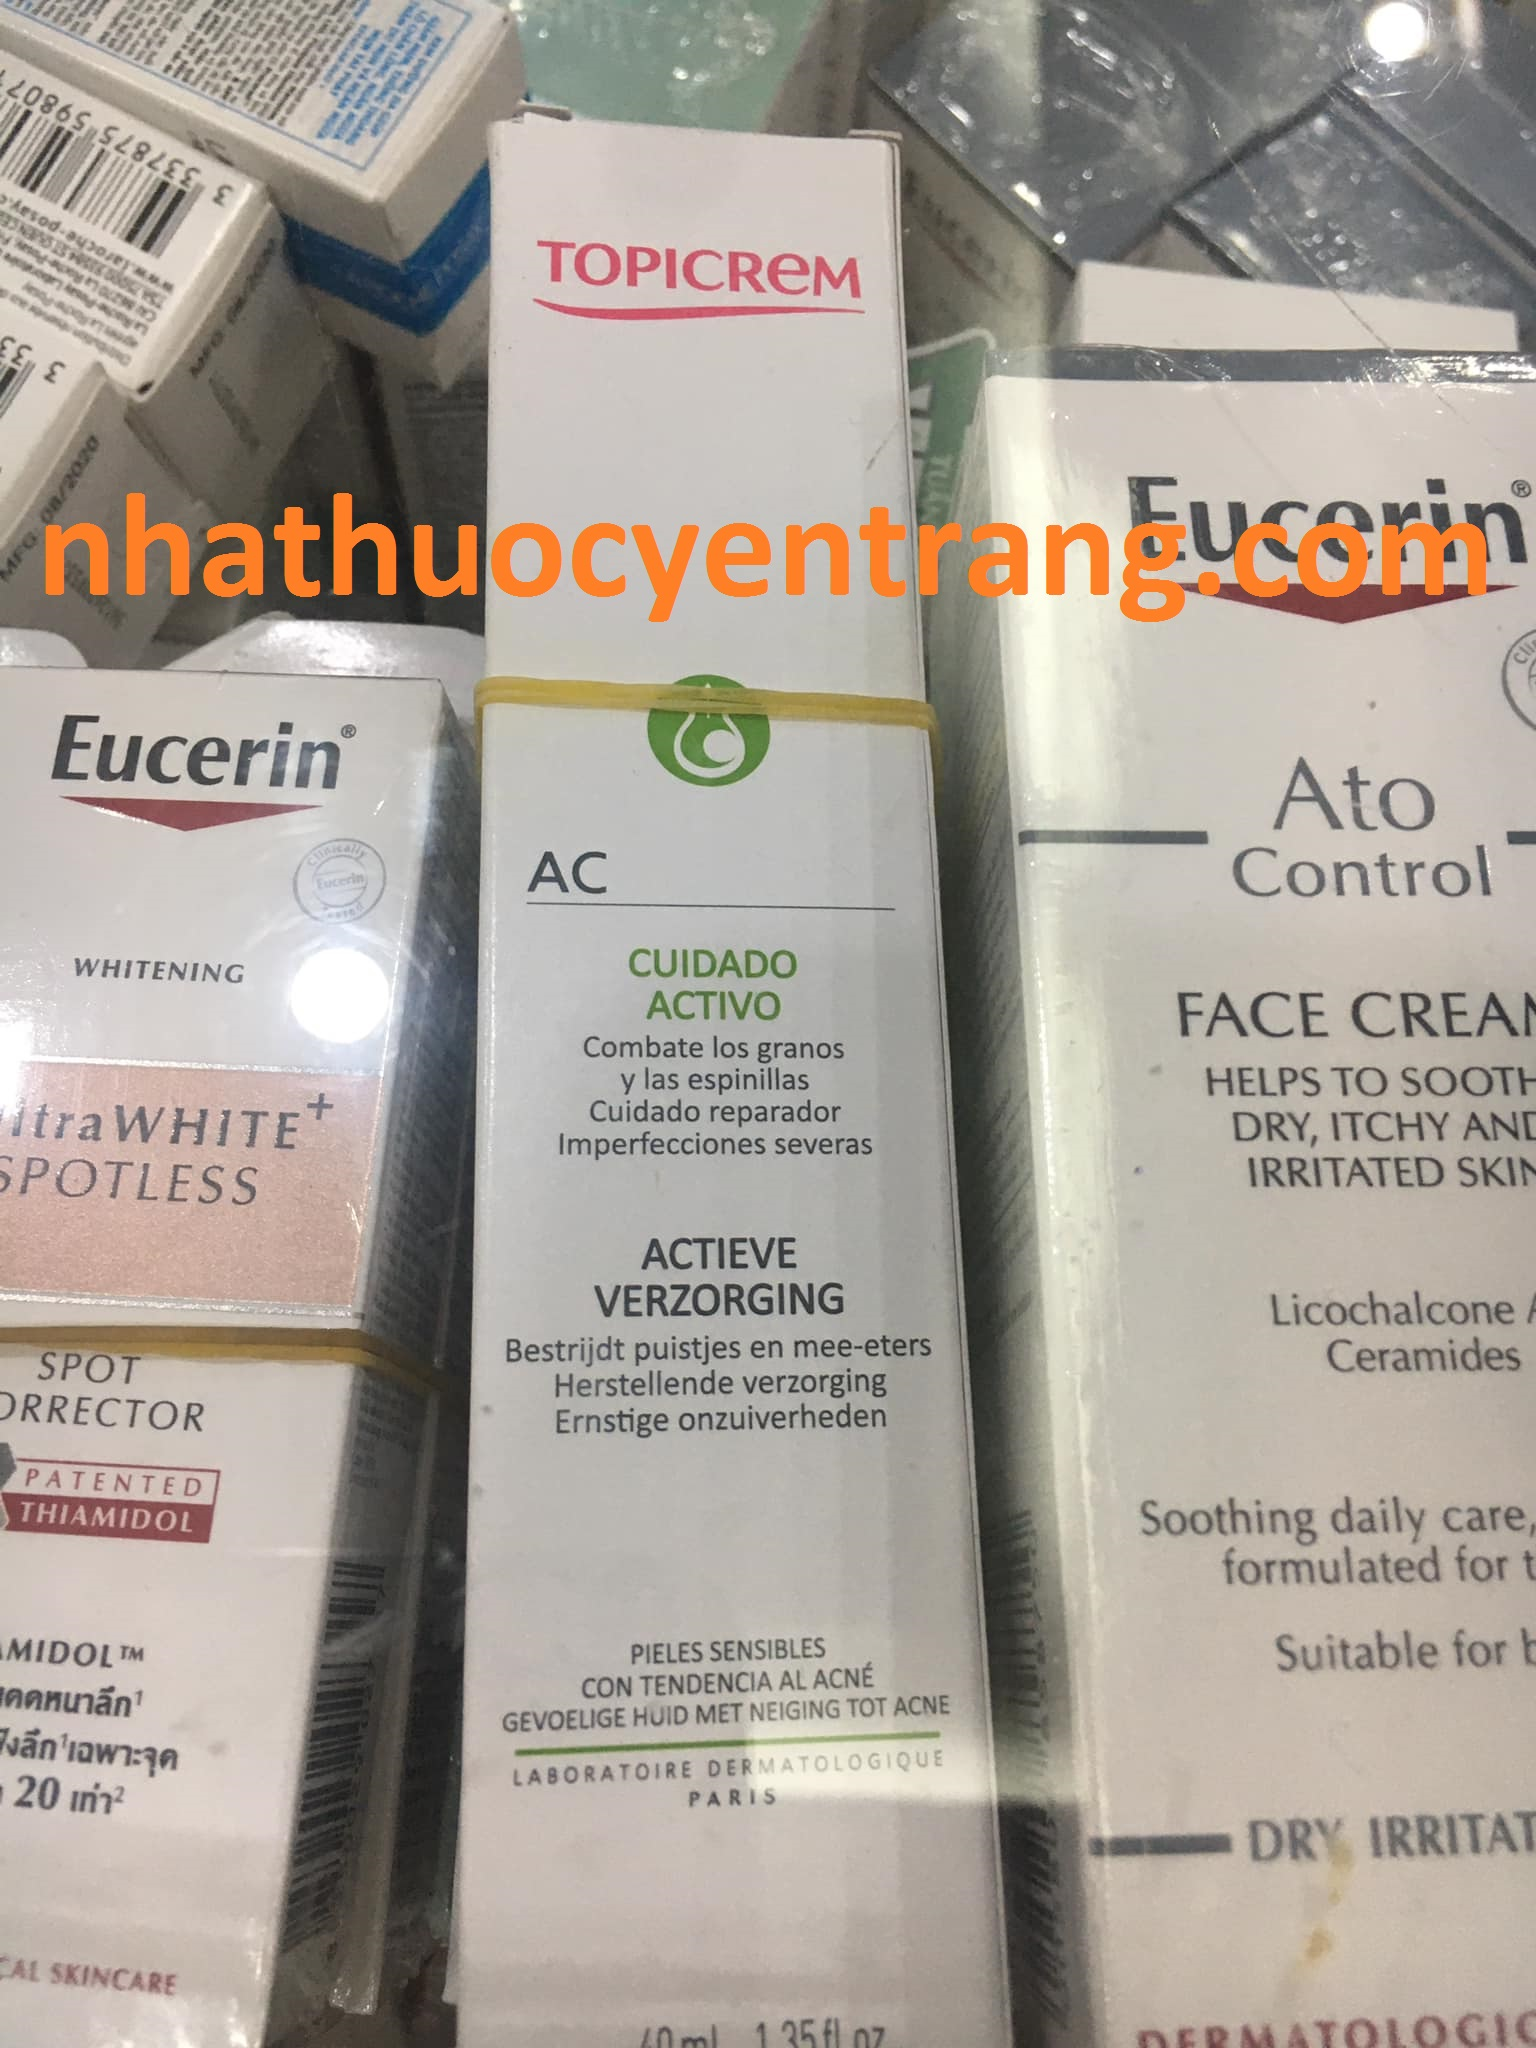 KEM DƯỠNG TOPICREAM-AC CUIDAVO  40ML